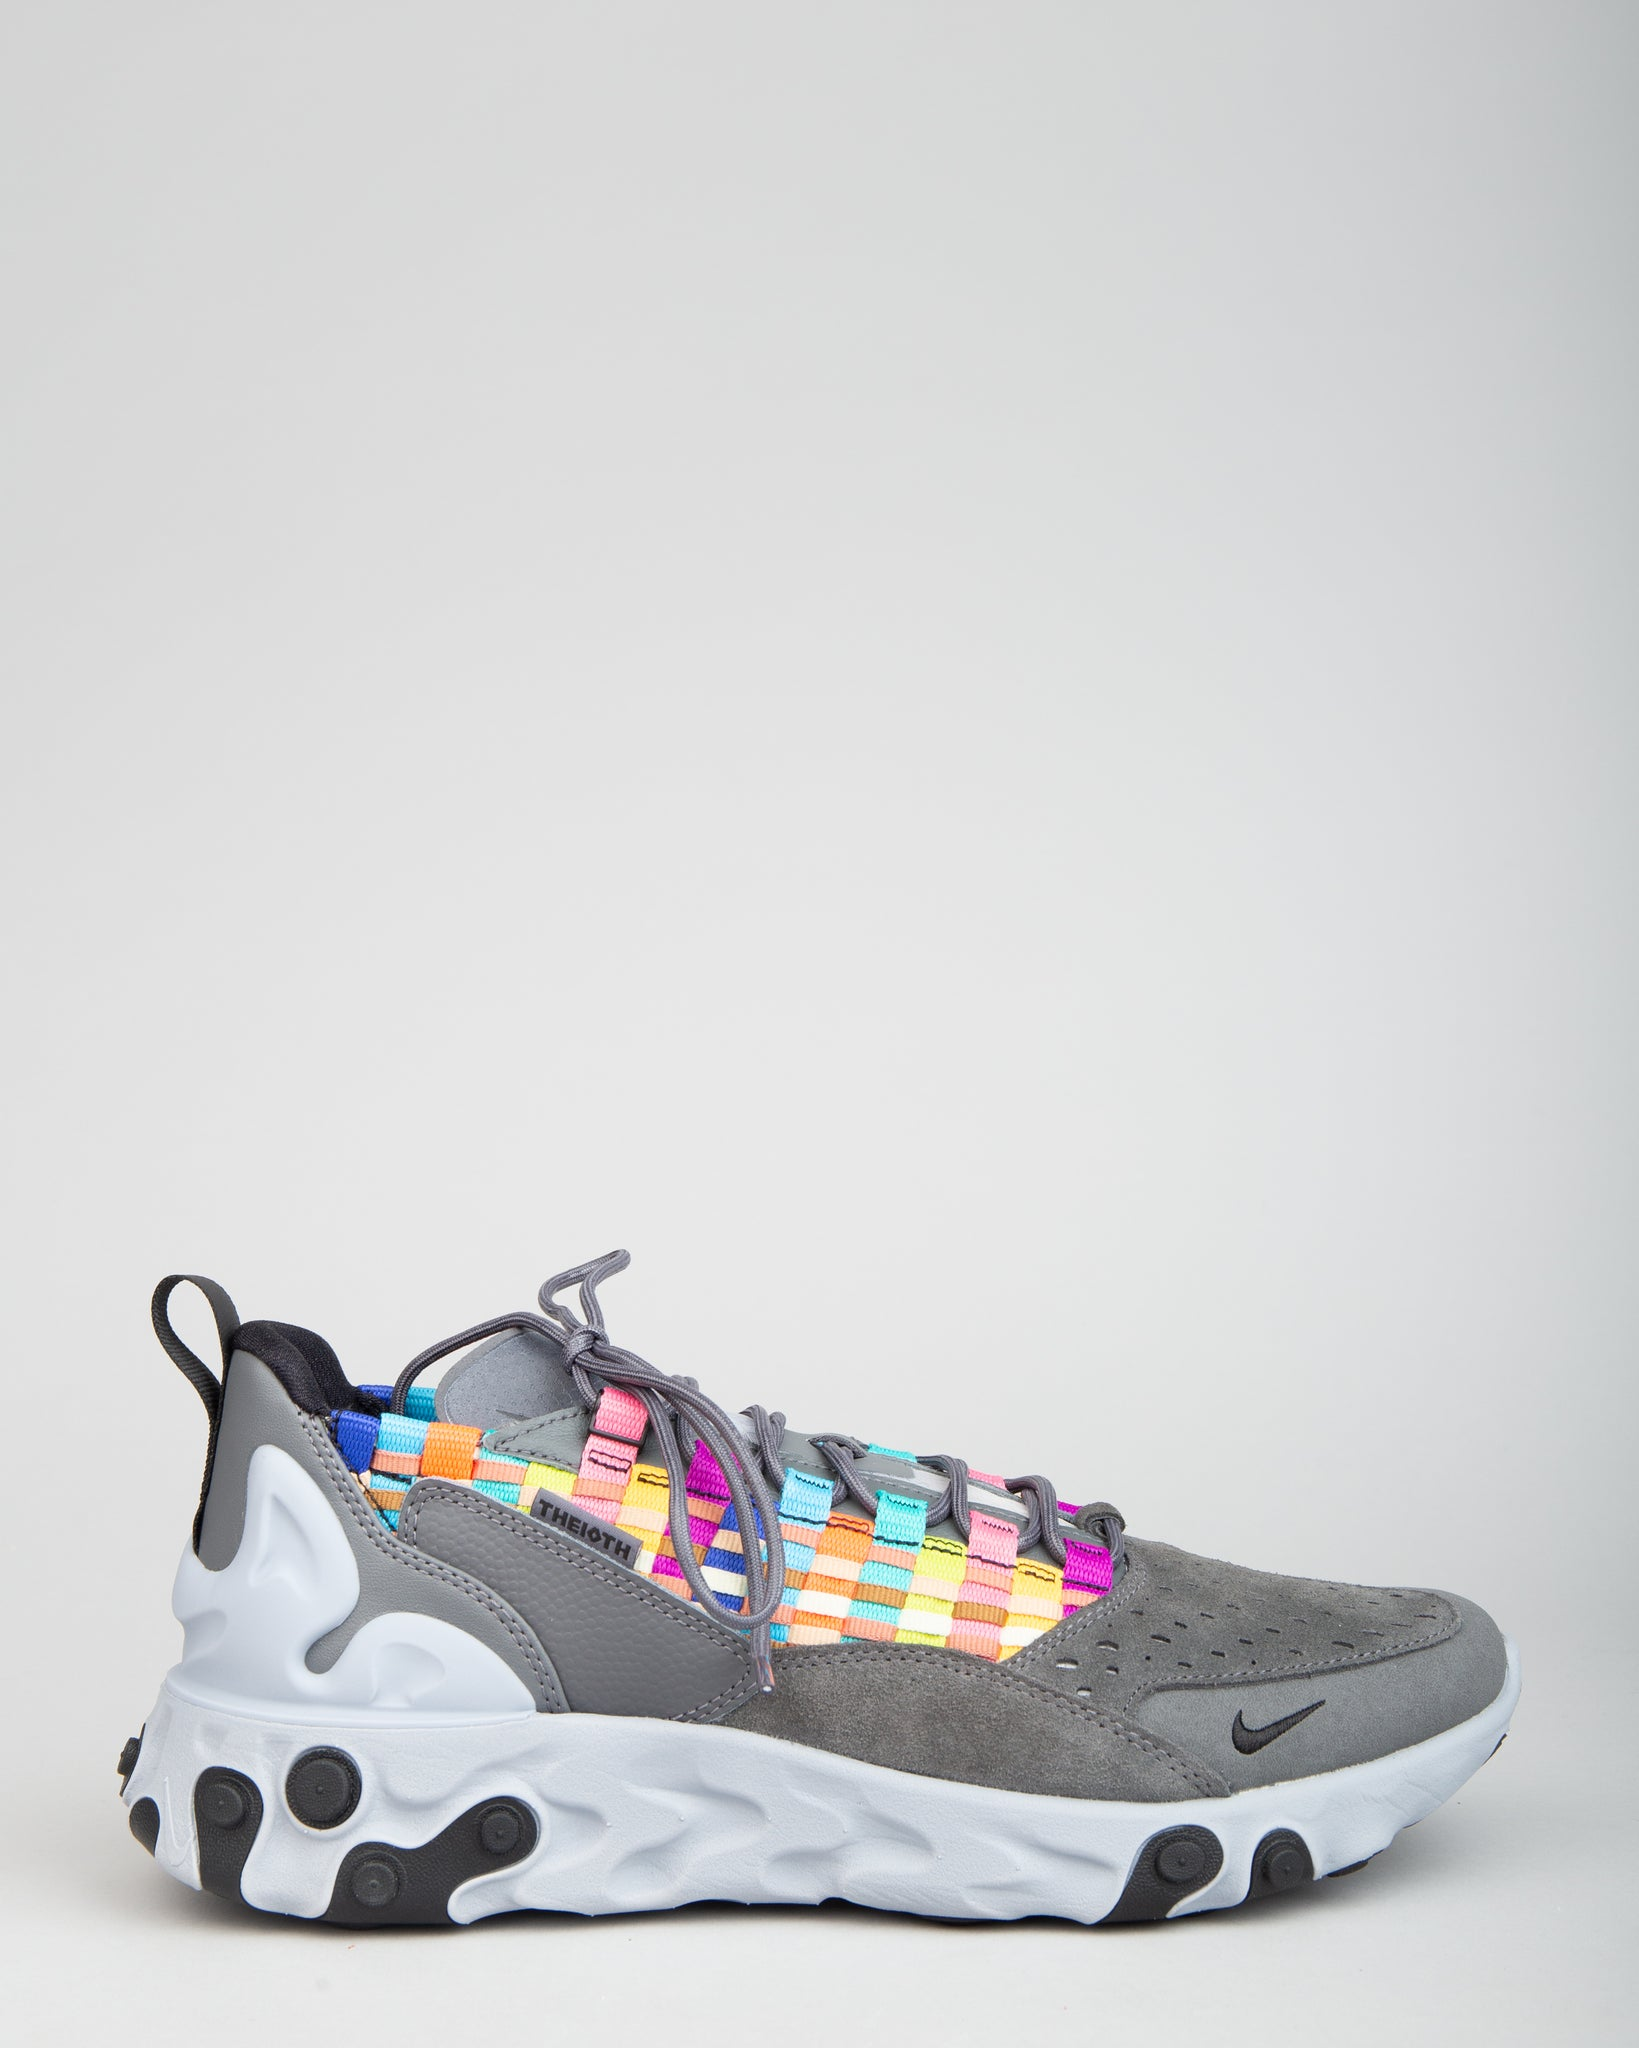 React Sertu Iron Grey/Black/Light Smoke Grey